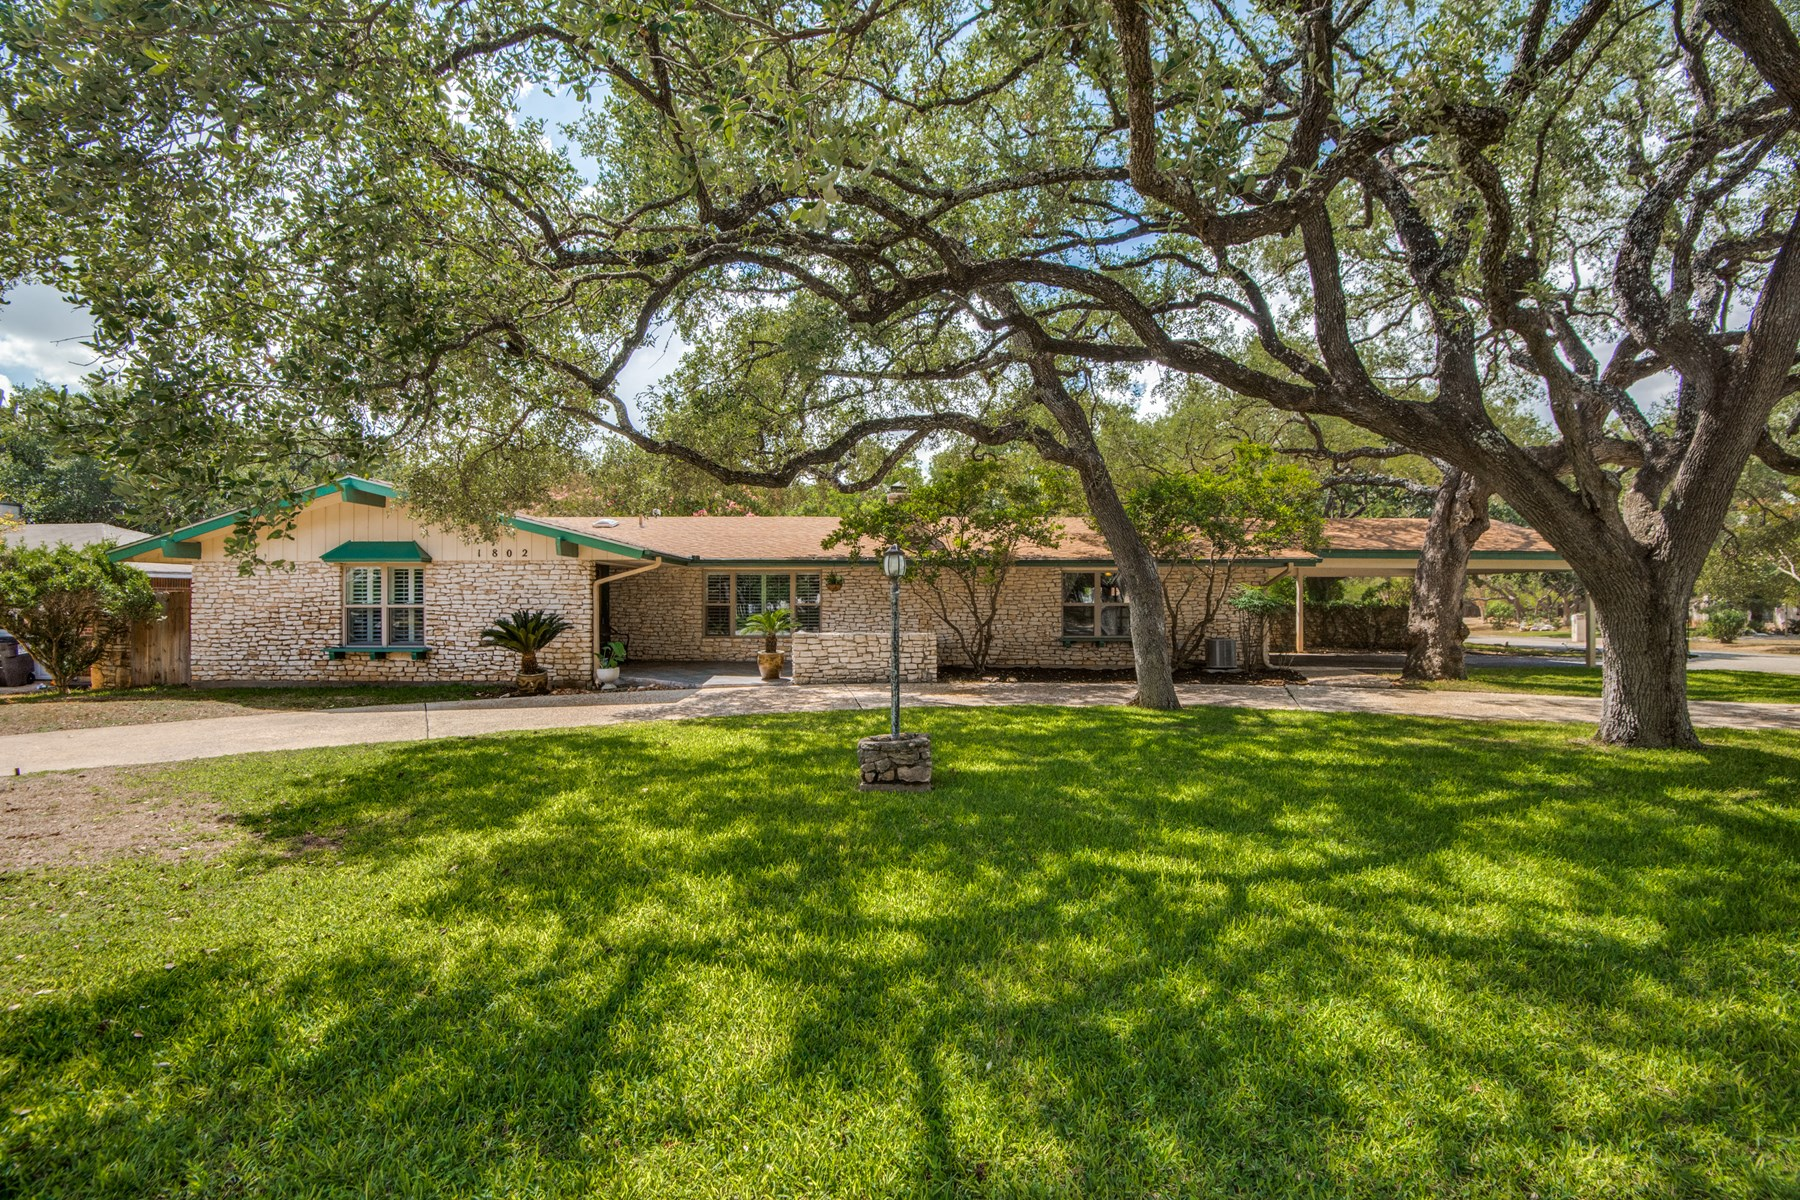 CHARM & CONVENIENCE IN ONE LOVELY HOME IN NORTH SAN ANTONIO!